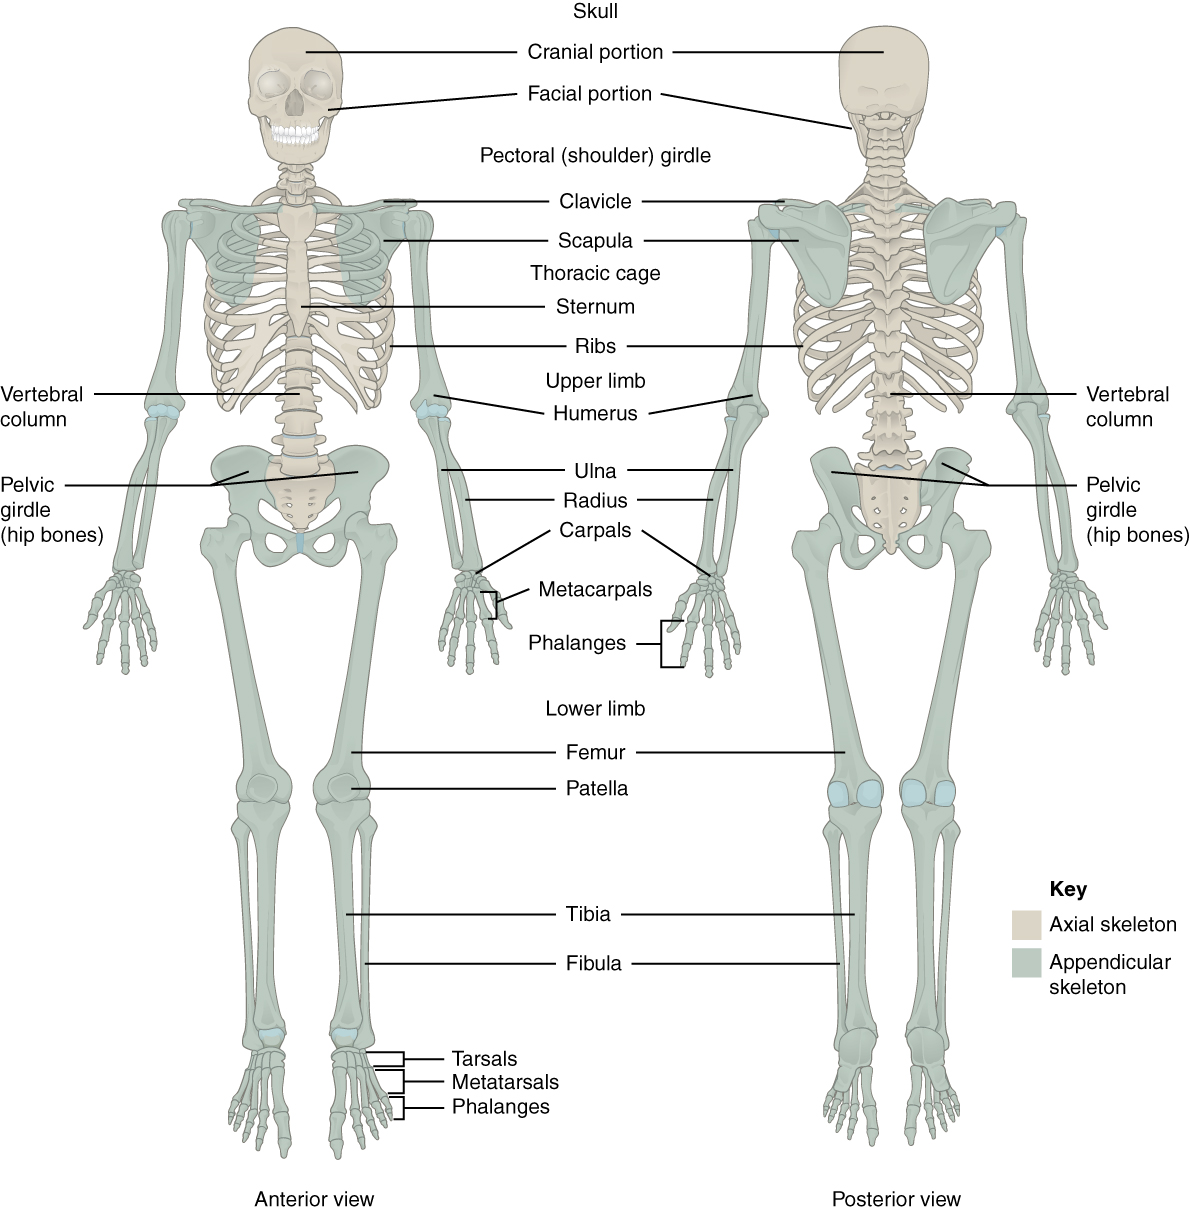 Introduction to the Appendicular Skeleton | Anatomy and Physiology